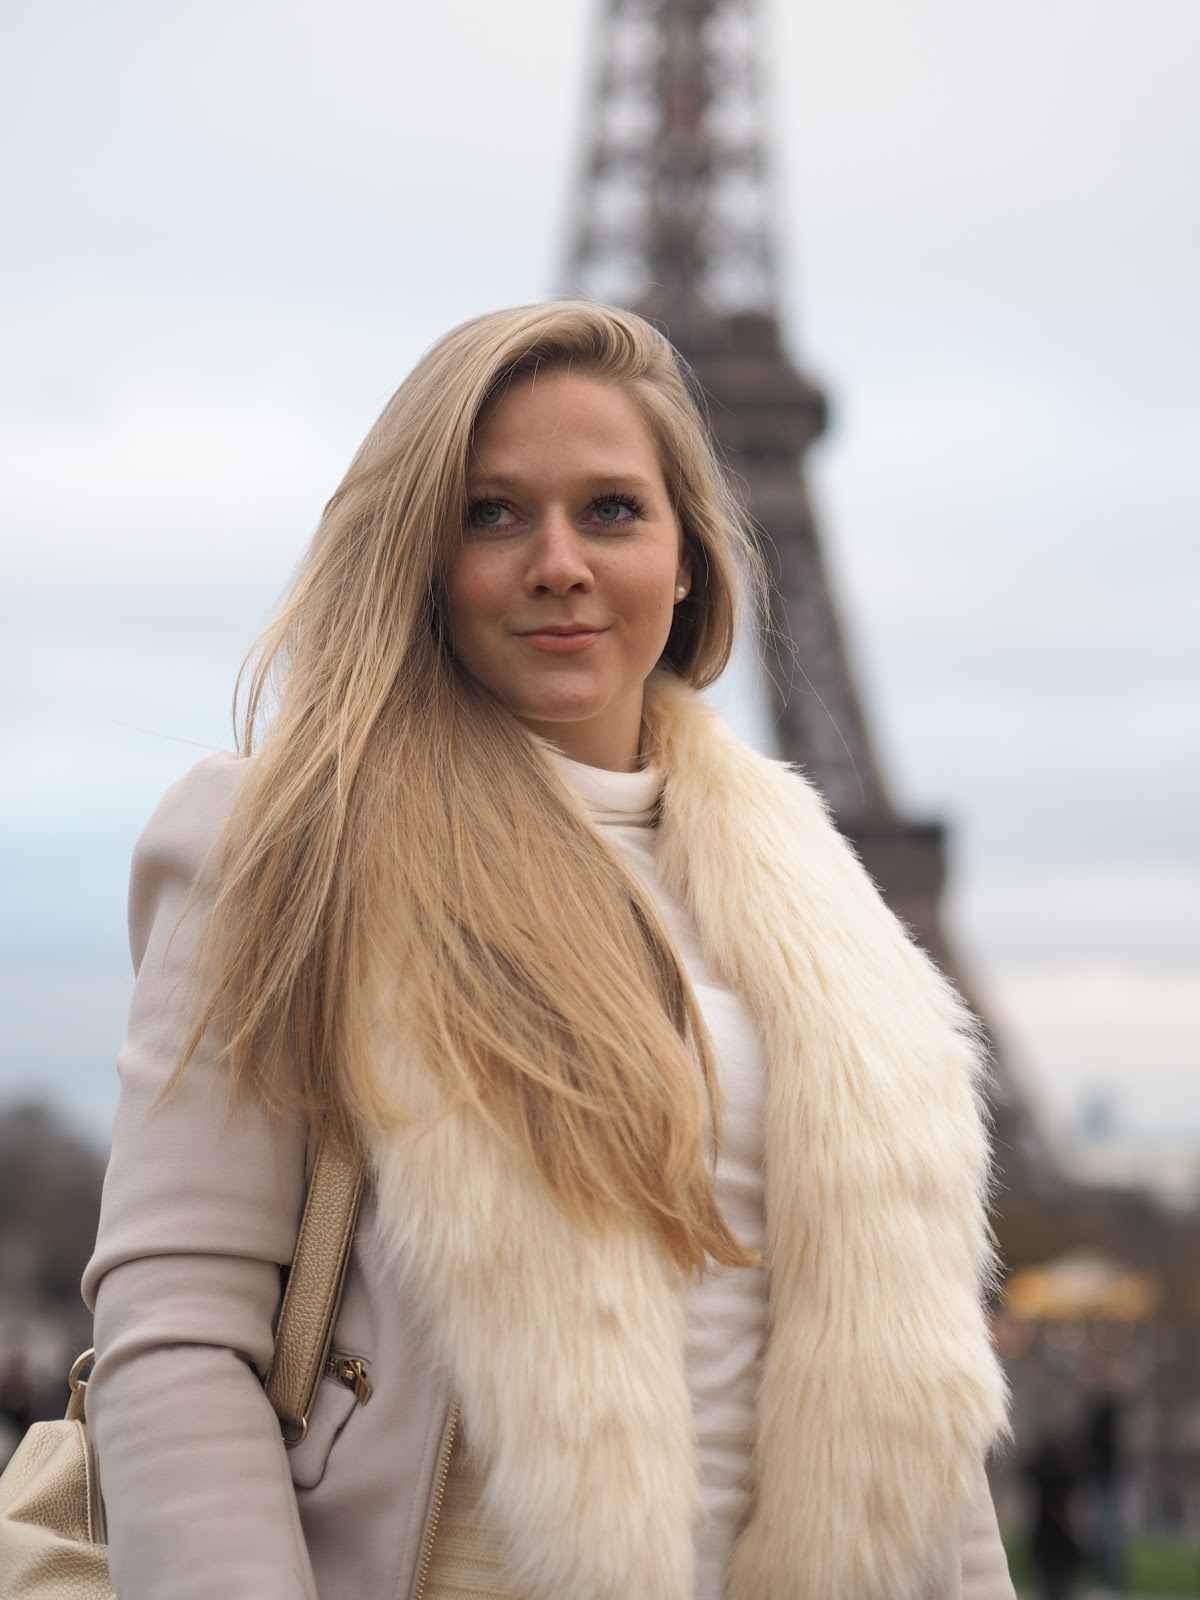 Blonde Girl, Katie Matthews, KALANCHOE, standing outside the Eiffel Tower, Paris